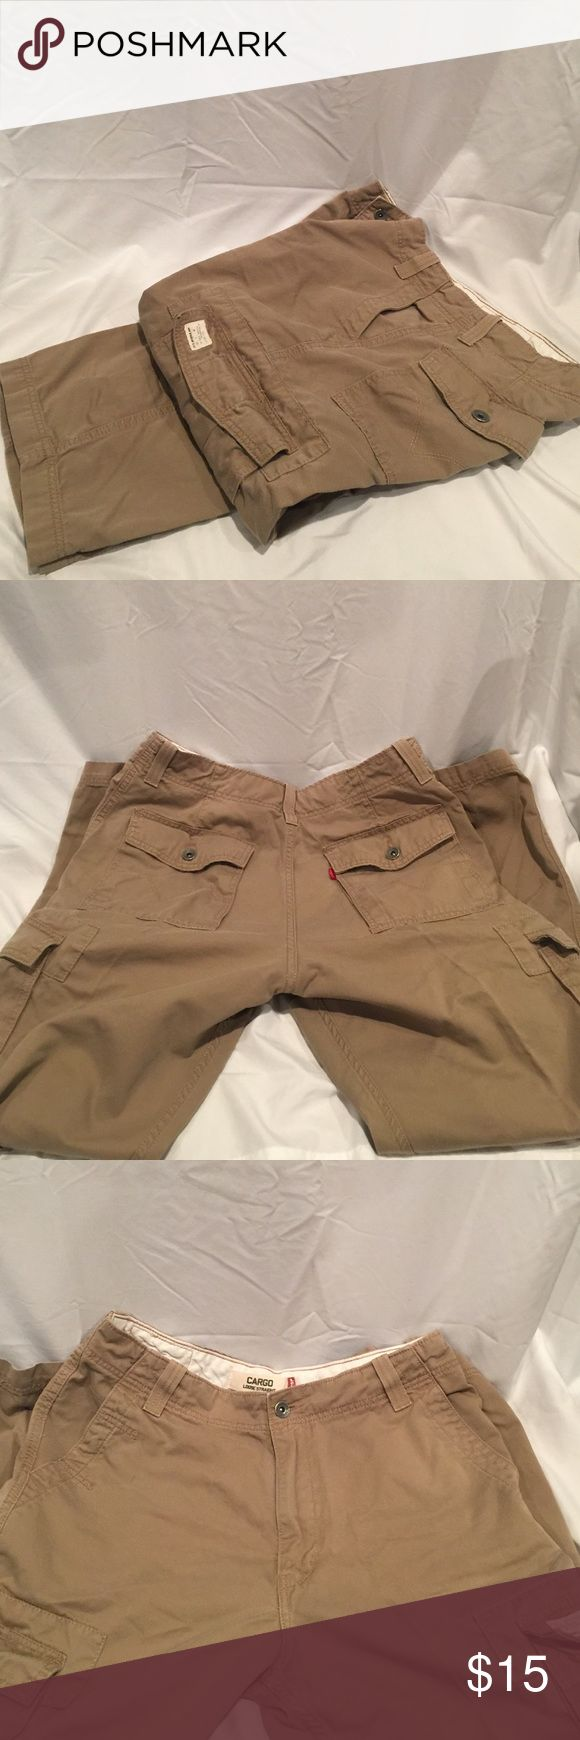 """Levi's Men's Khaki Pants Levi's Men's Khaki Pants with cargo pockets. """"Loose Straight"""". Great for athletic fit. Gives more room through the thighs. In excellent condition. Button fly and zipper closure, Back and side pockets button close. 34/32 Levi's Pants Cargo"""